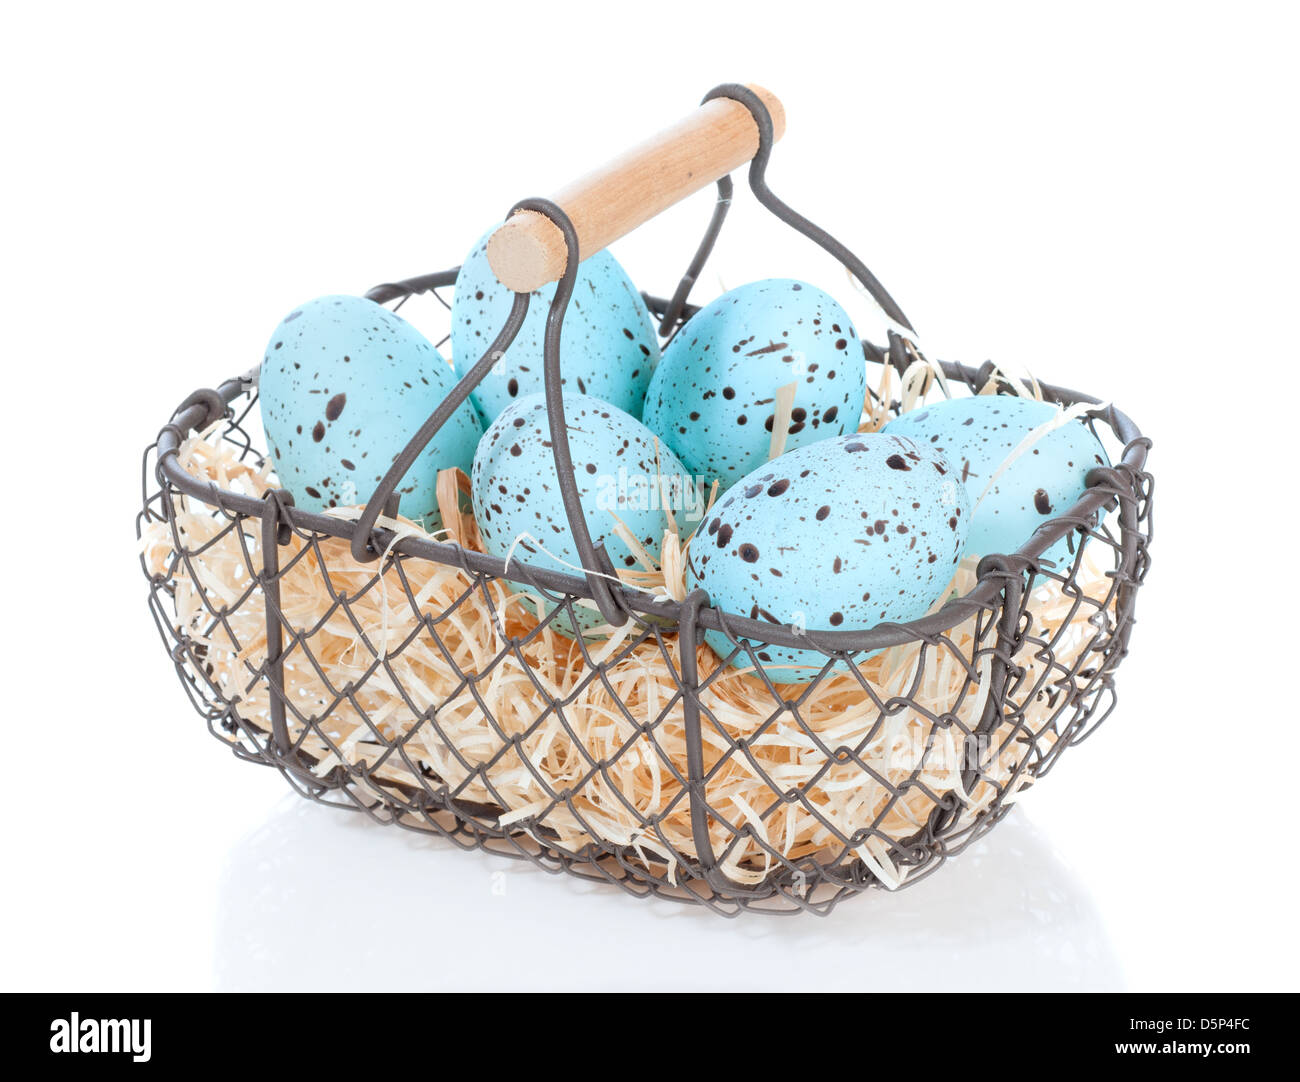 Duck Egg Basket Stock Photos & Duck Egg Basket Stock Images - Alamy